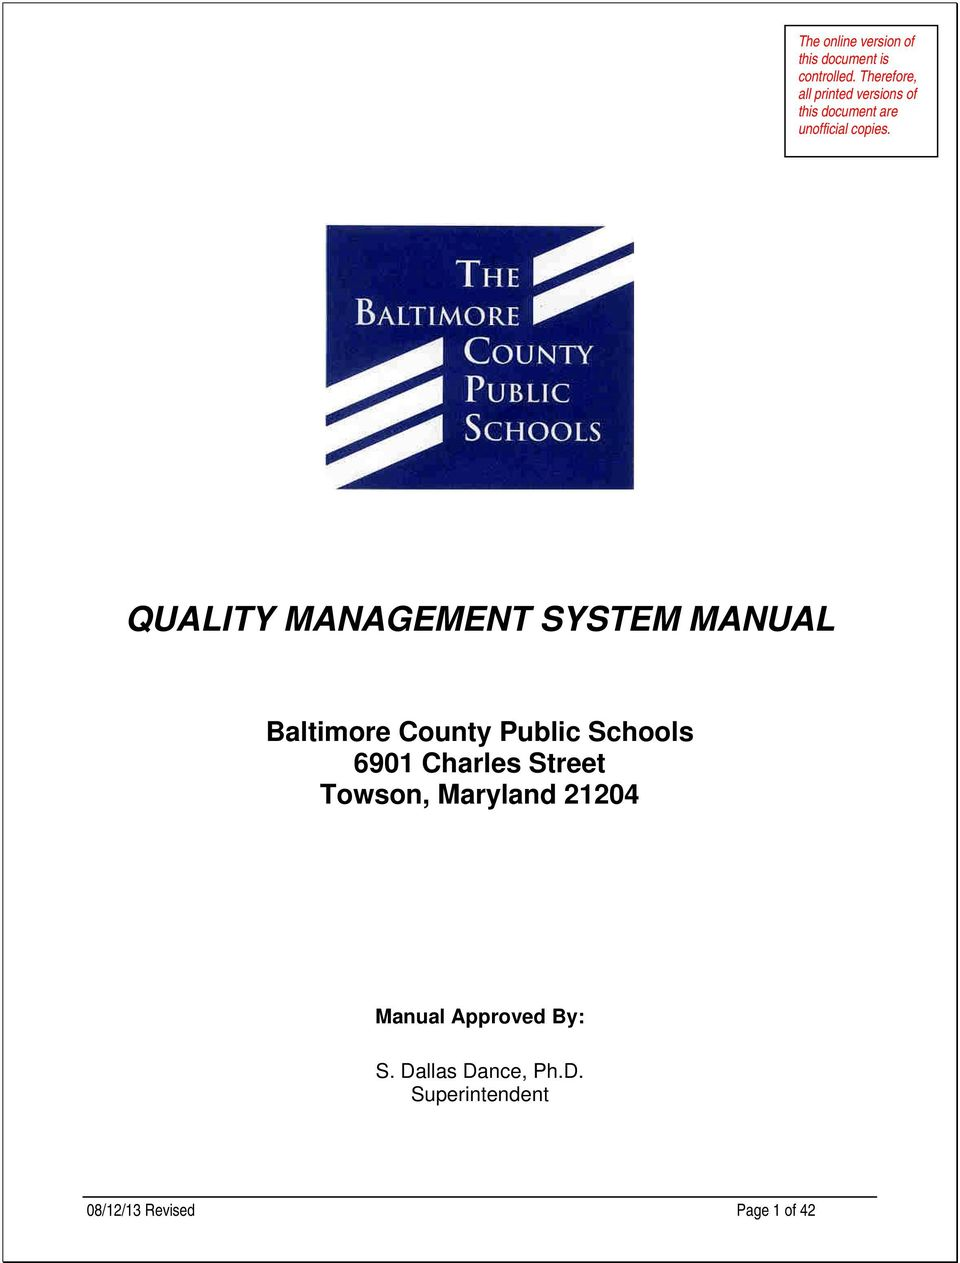 QUALITY MANAGEMENT SYSTEM MANUAL 6901 Charles Street Towson, Maryland